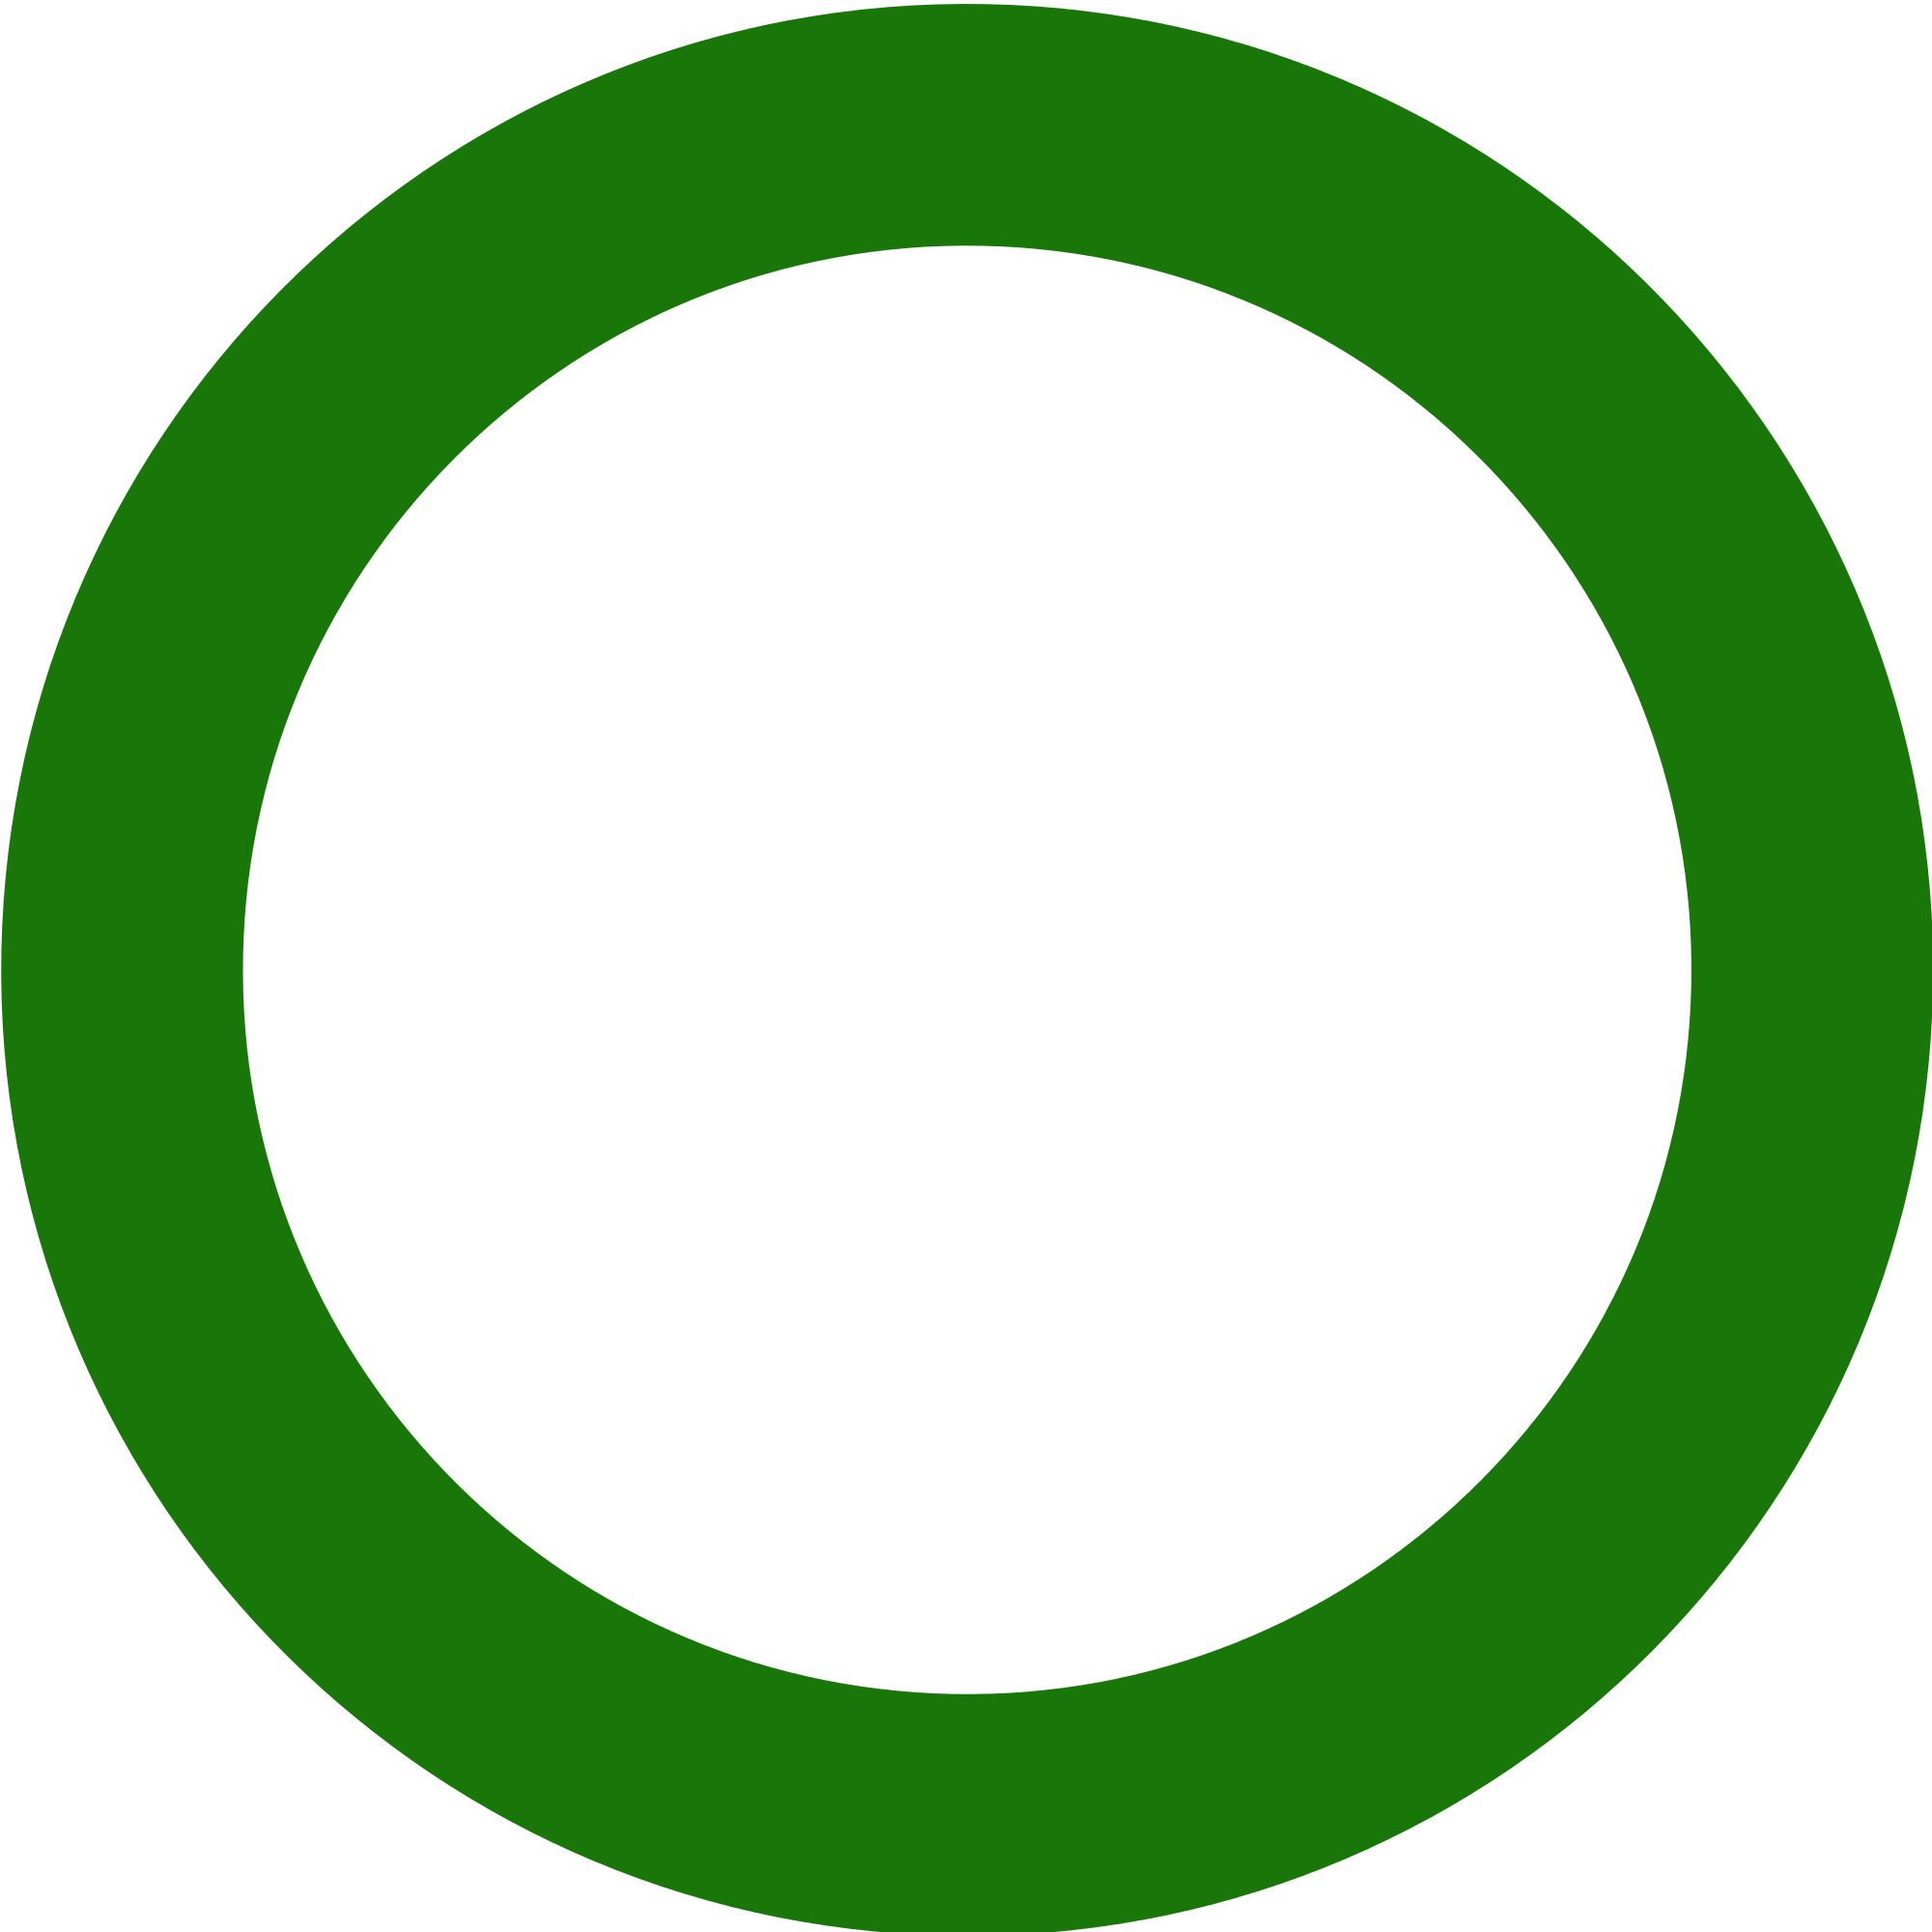 2000x2000 Filesmall Dark Green Circle.svg